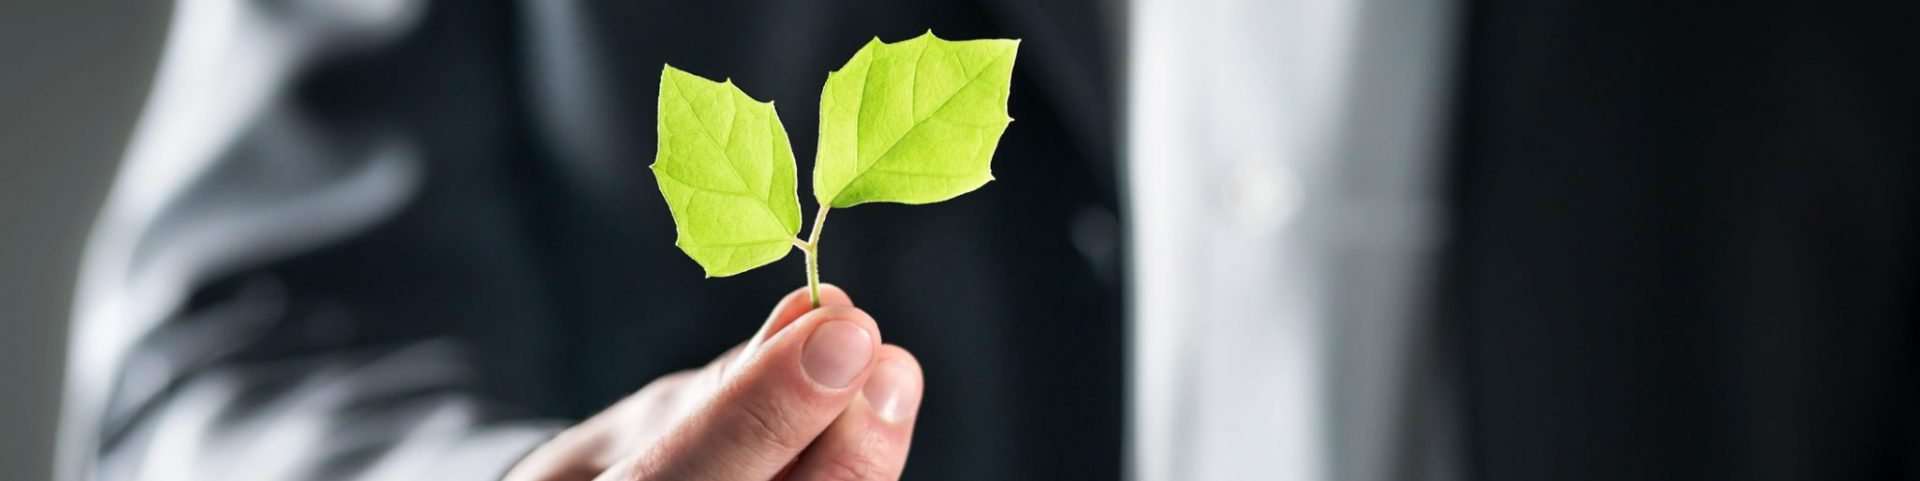 Businessman hoping to support the circular economy holds up small green leaf